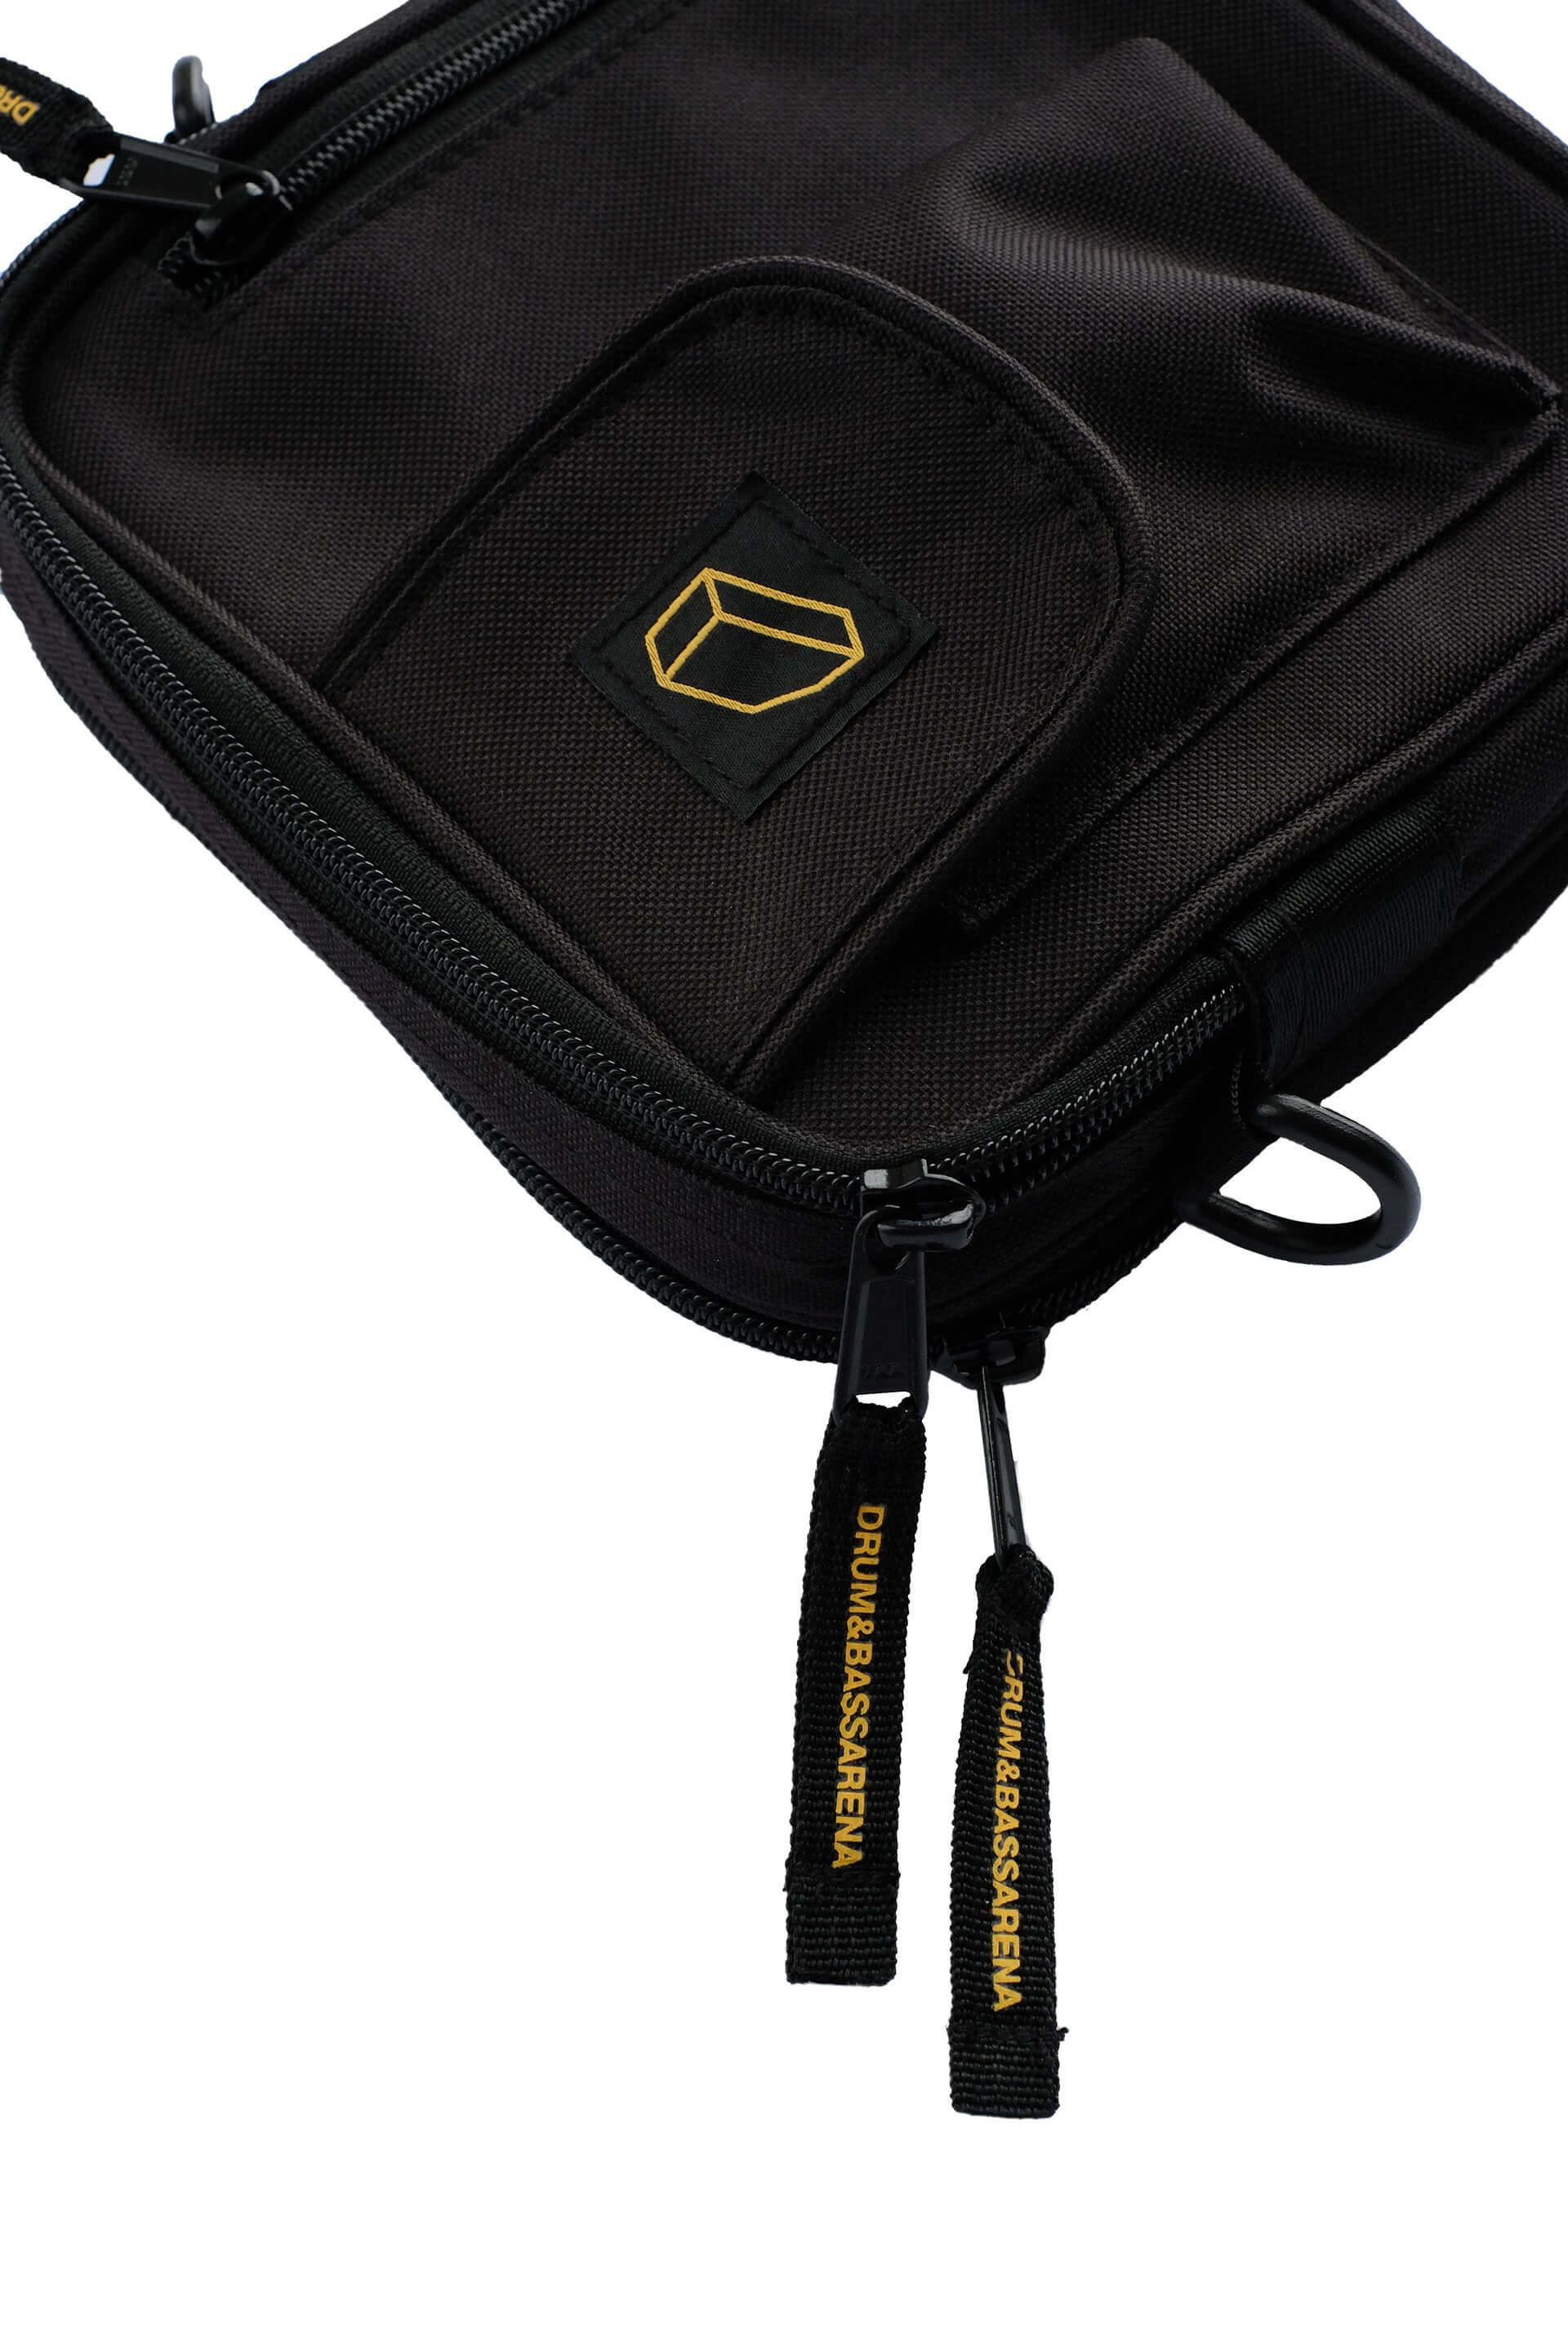 Drum&BassArena Essentials Bag - Drum&BassArena